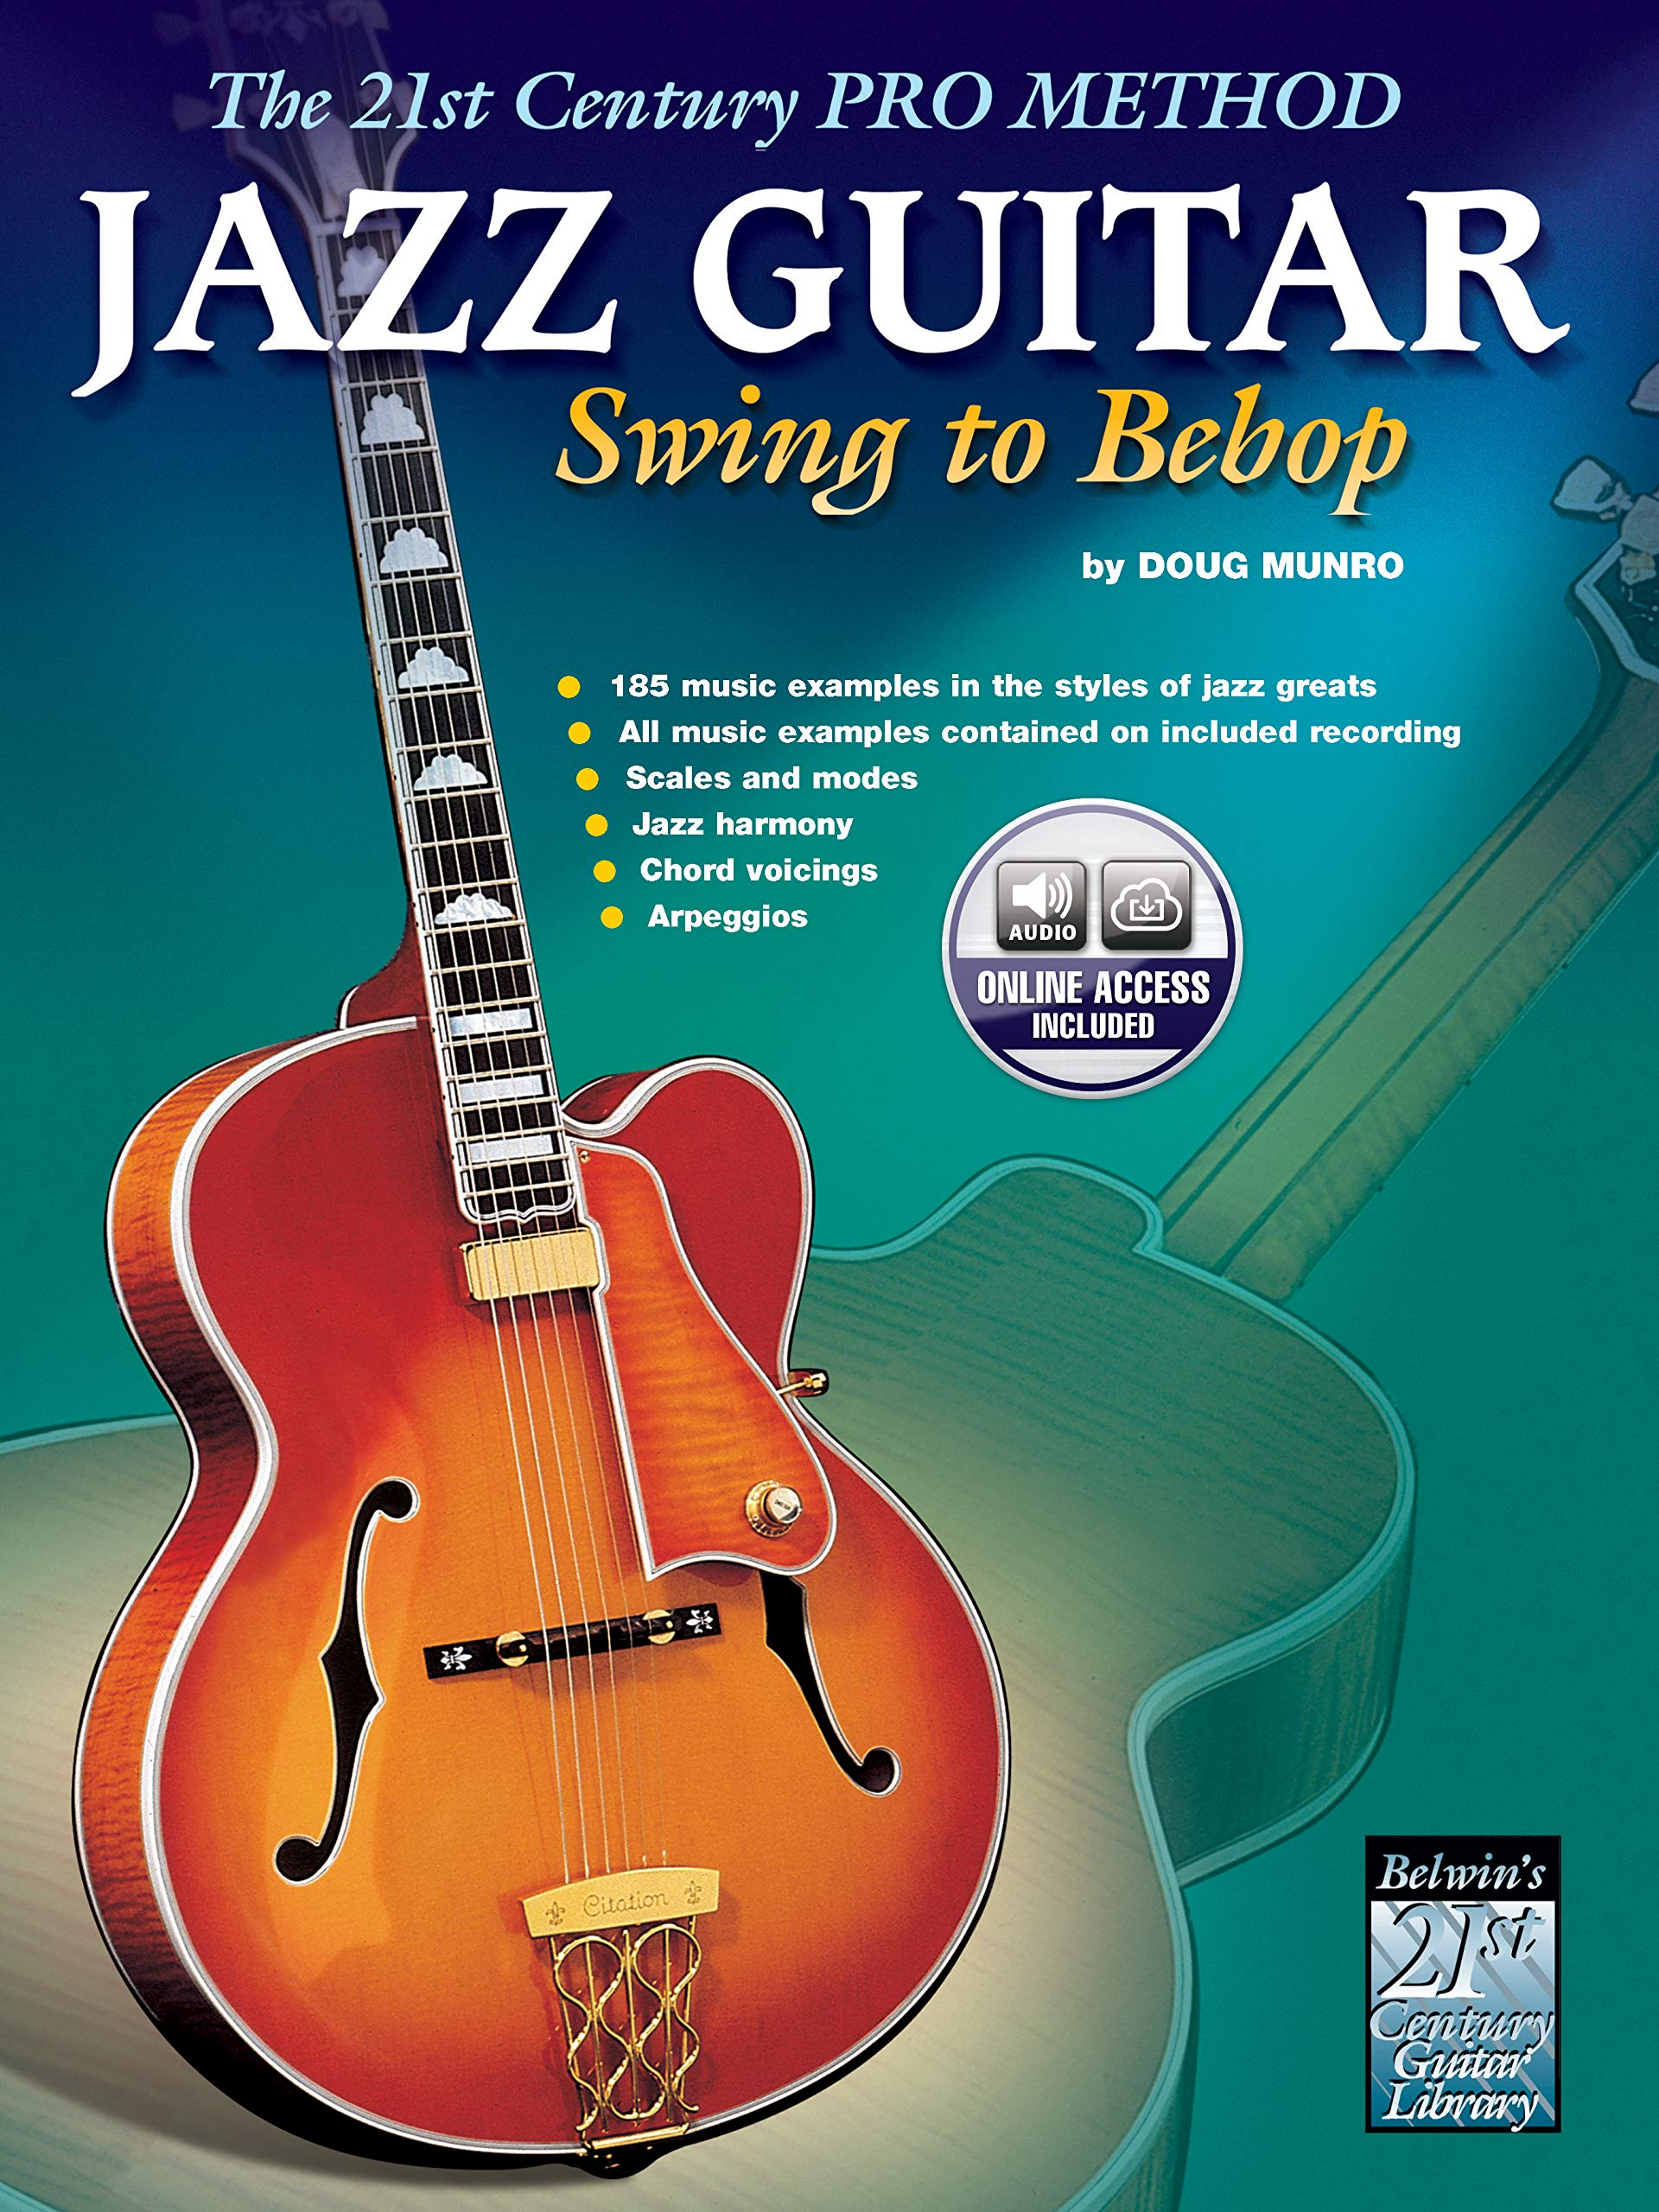 21ST CENTURY PRO METHOD: Swing to Bebop: Amazon.es: Munro, Doug ...